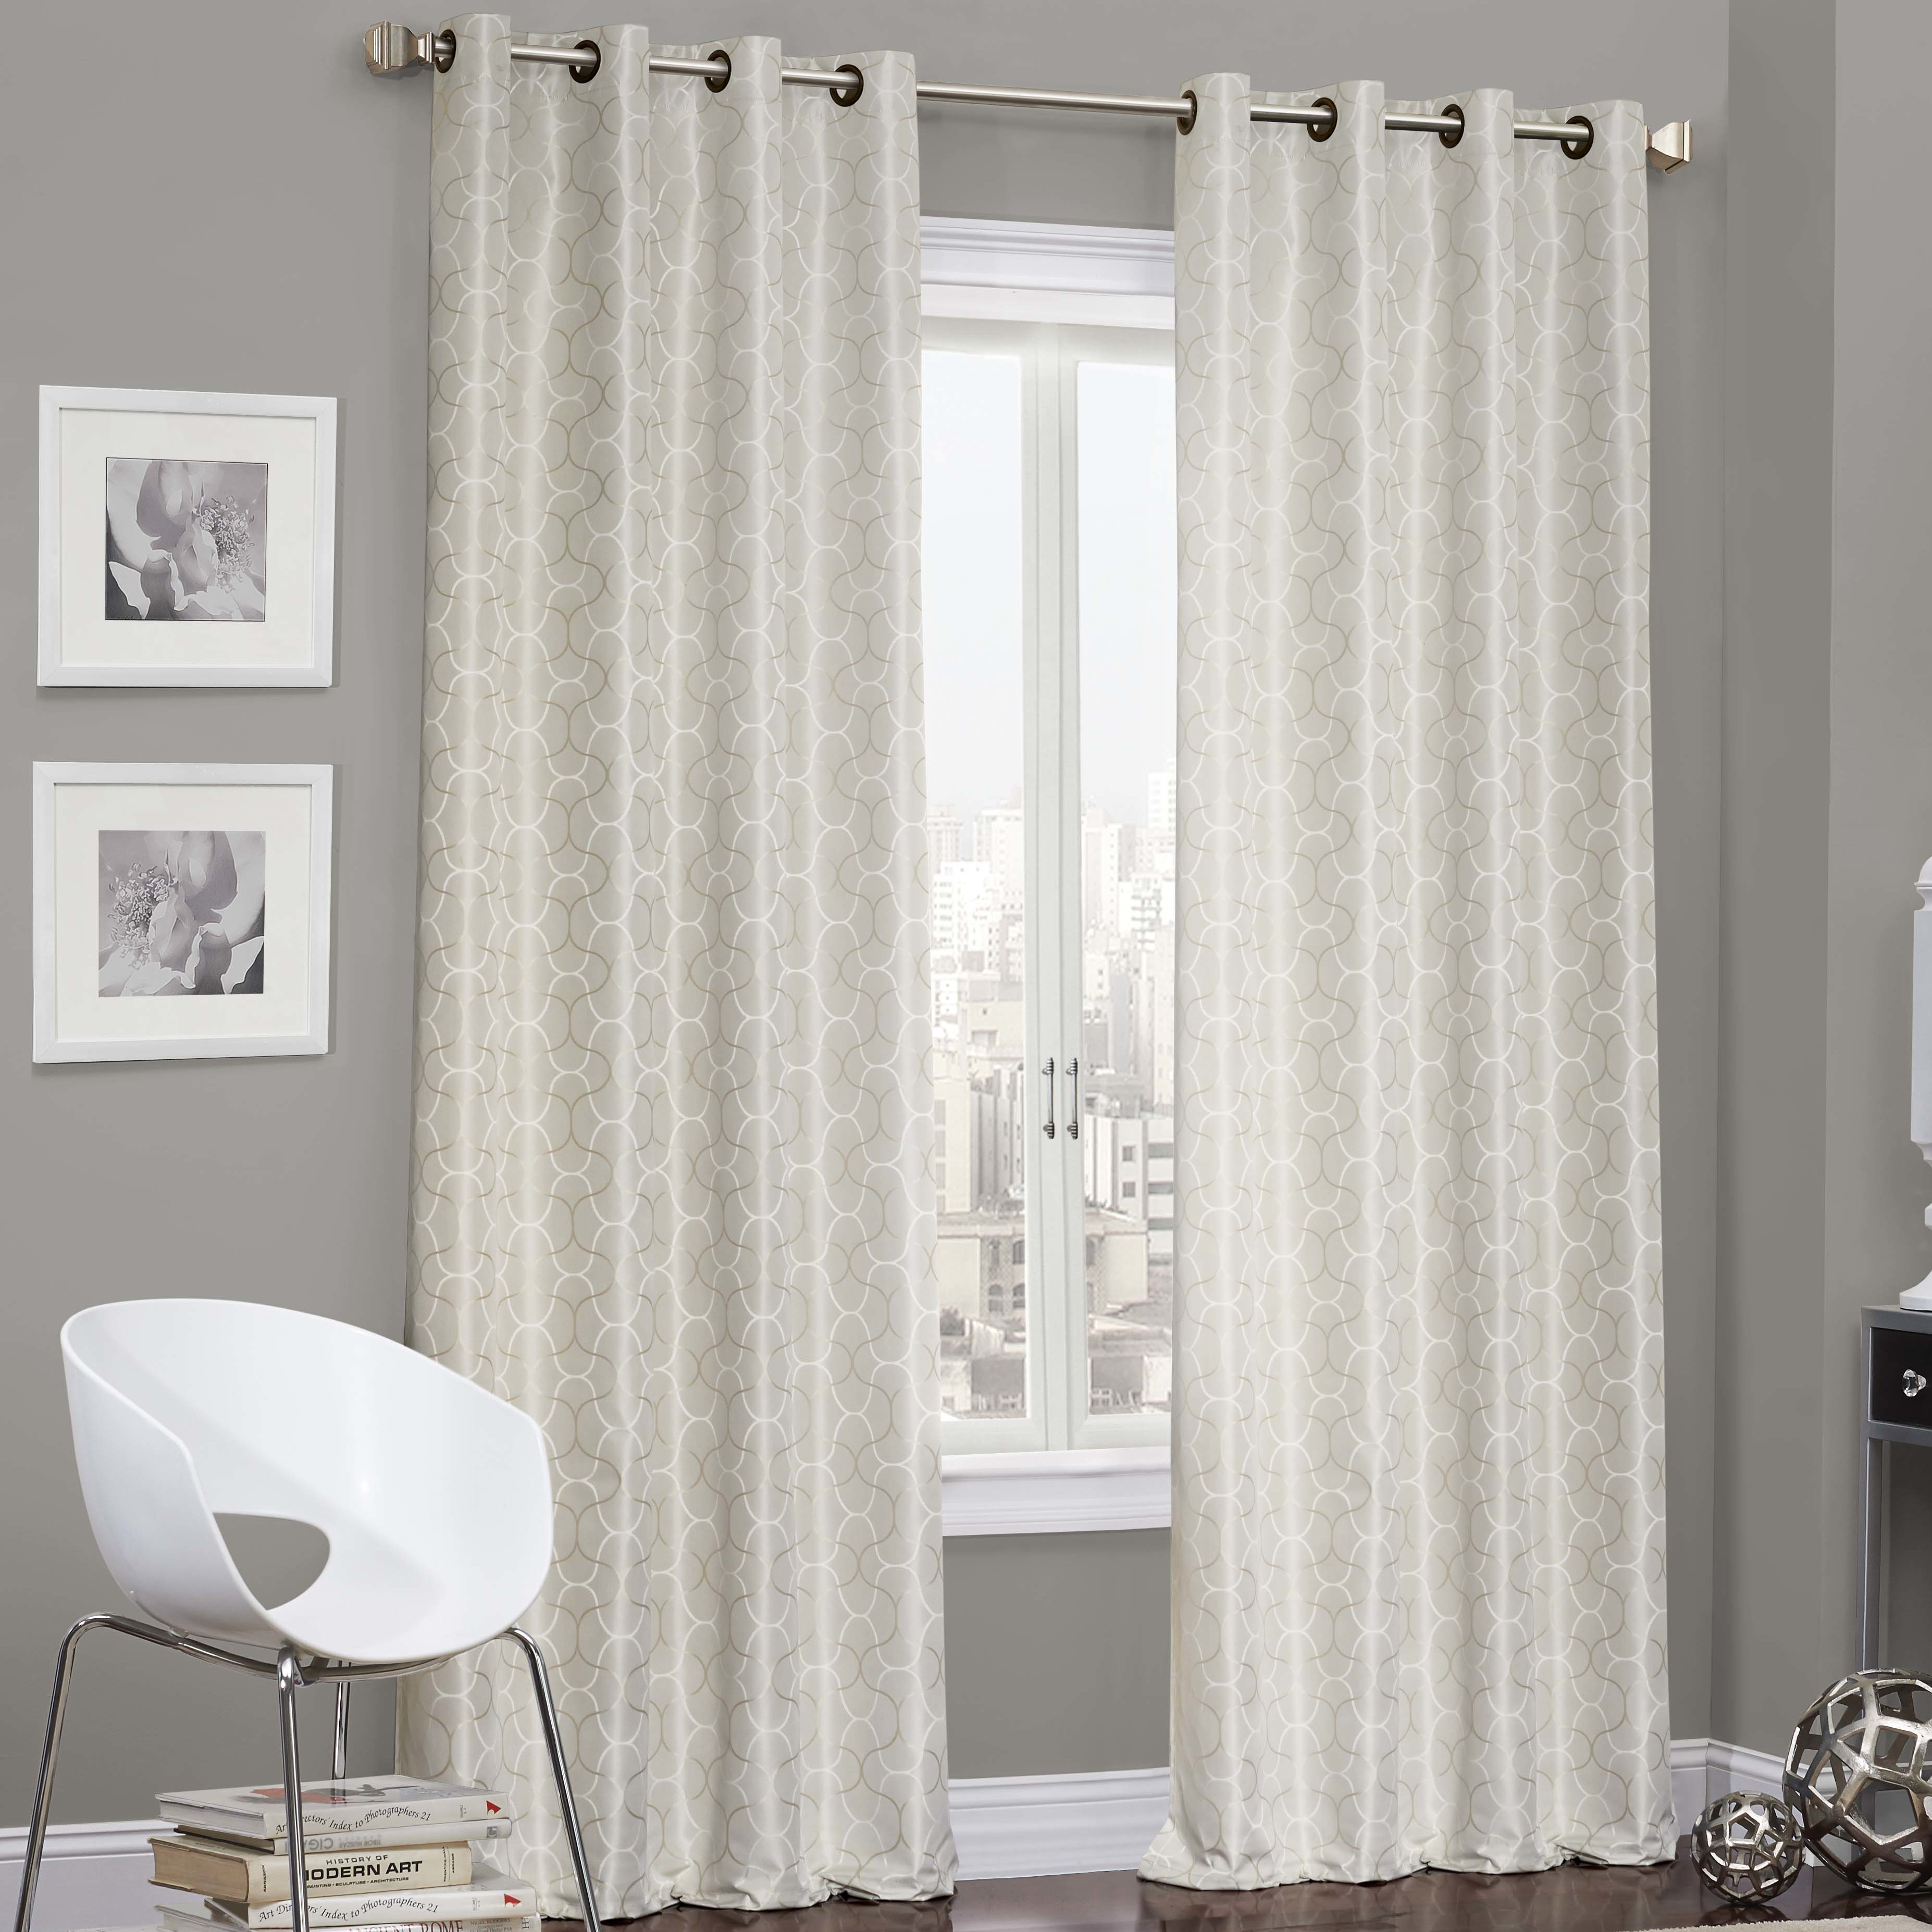 sears bedroom curtains. soundproof curtains target | bedroom blackout walmart sears